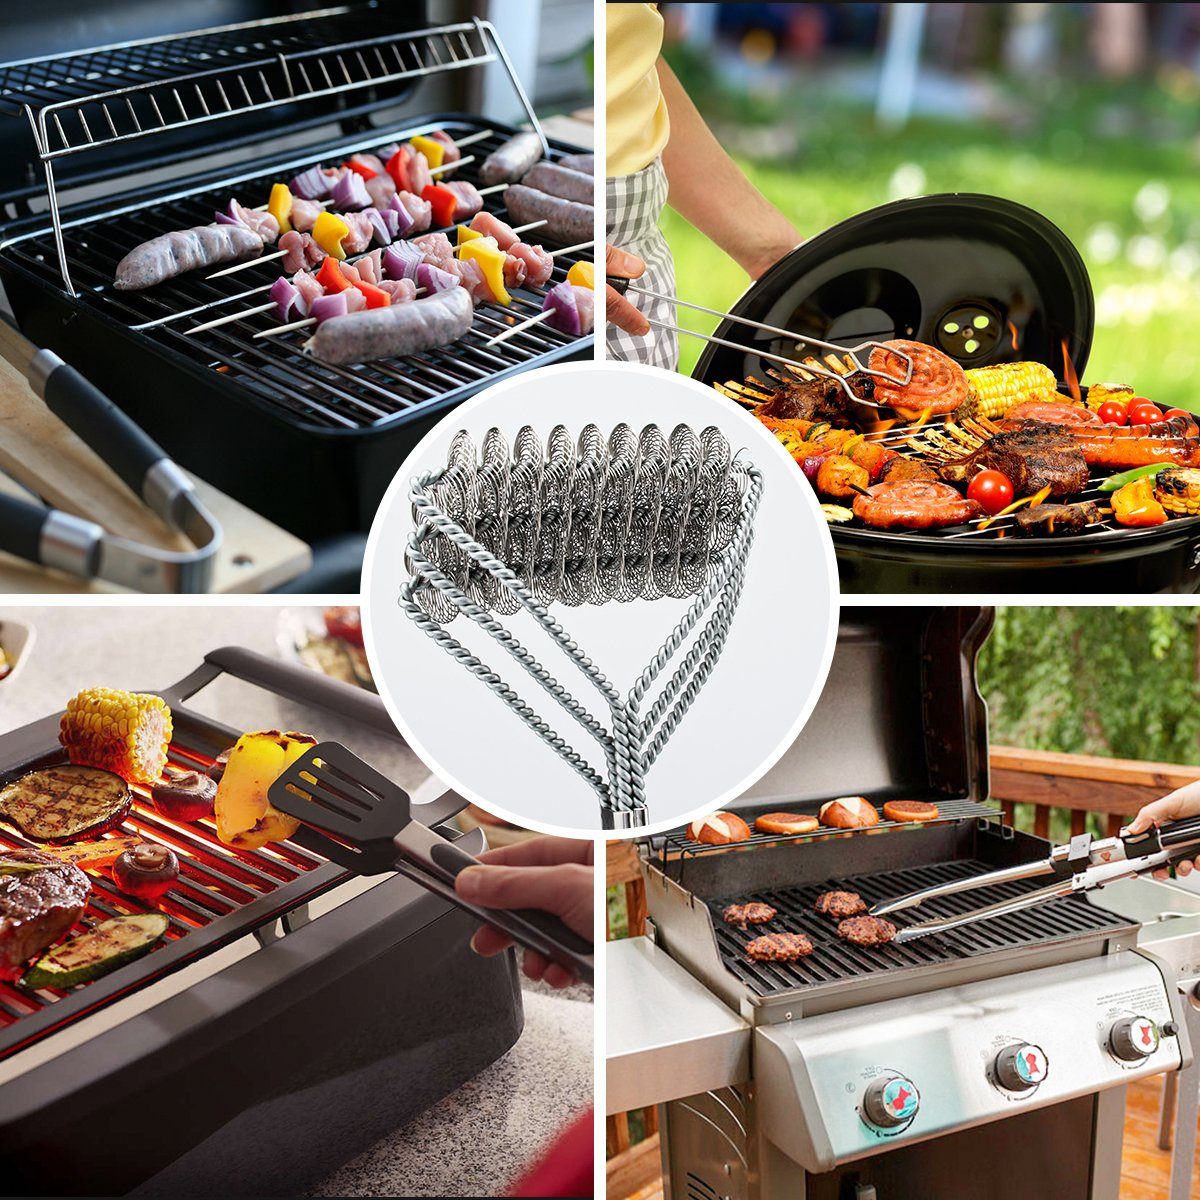 Grill Brush and Scraper Grill Brush Bristle Free - Grill Brsh 18'' for Porcelain Grates Outdoor Stainless Steel Grill Cleaner Tool - BBQ Safe Scraper Barbeque Cleaning Accessories Stainl … by RuxBrush (Image #5)